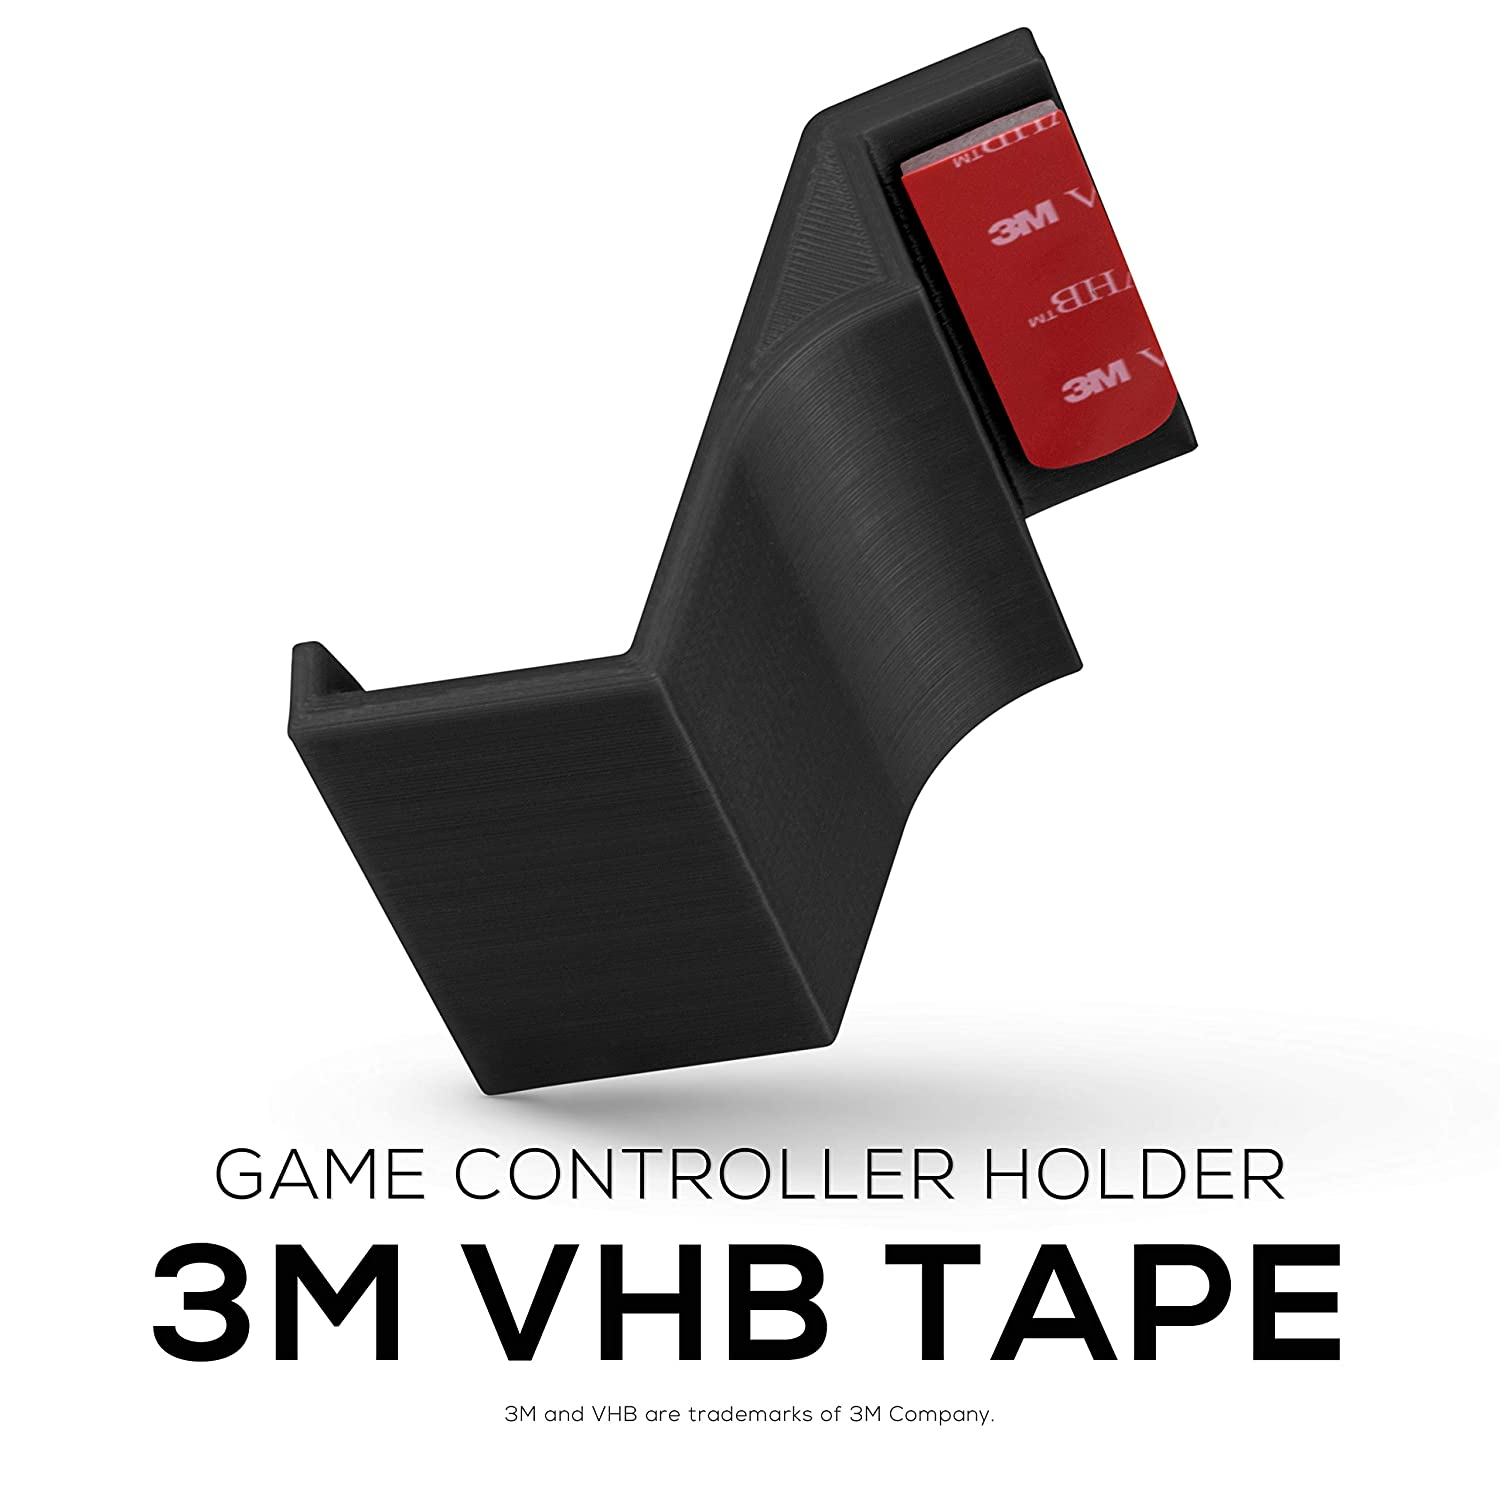 Game Controller Desktop Stand Holder (2 Pack) for XBOX ONE 360 SWITCH PS4 STEAM PC NINTENDO, Universal Gamepad Accessories - No screws, Stick on, Black By Brainwavz: Video Games